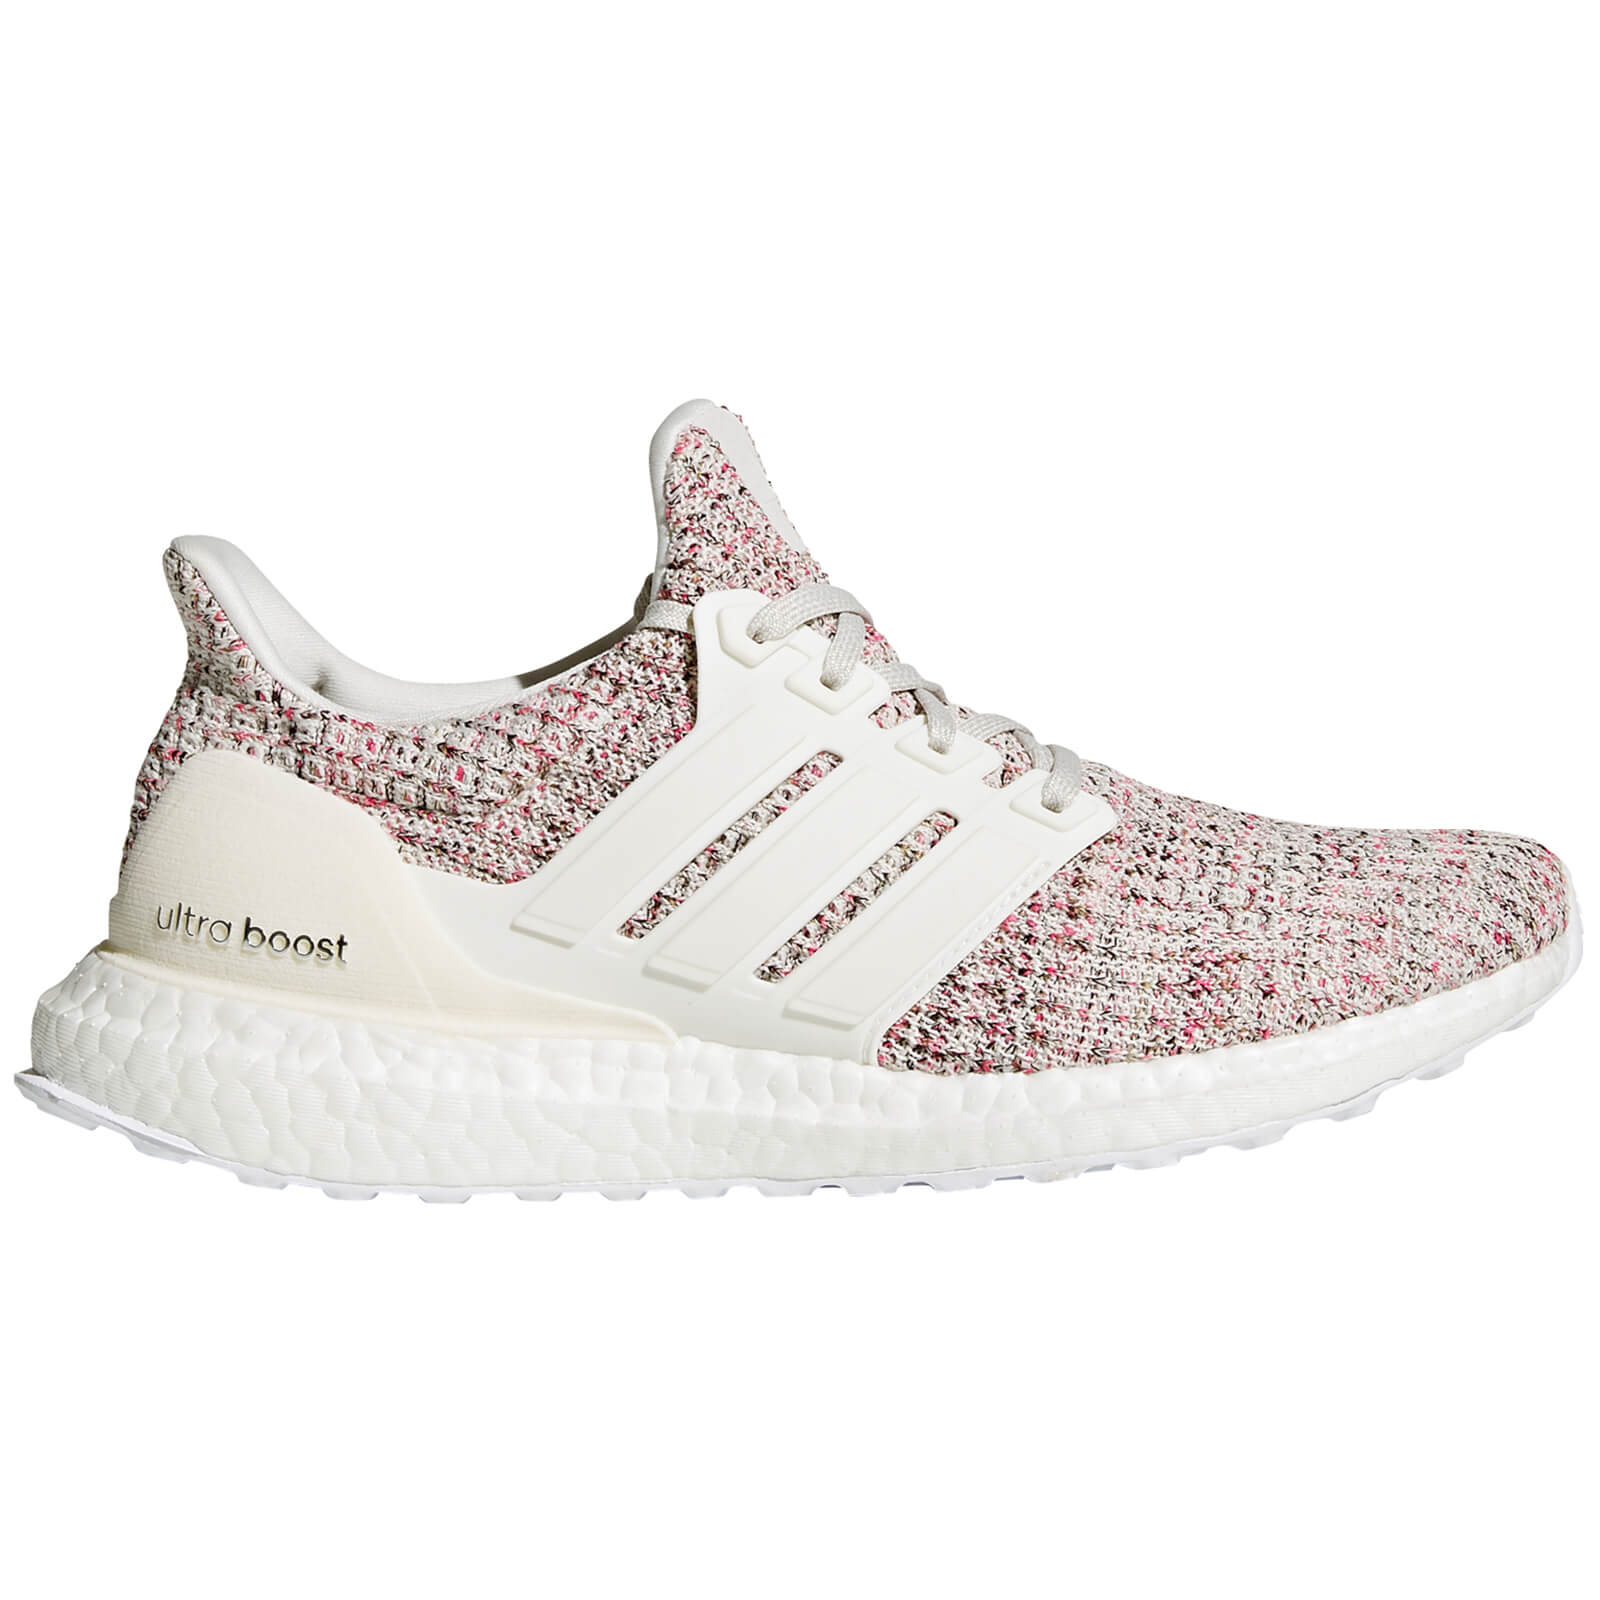 3837aa28ac43 adidas Women s Ultraboost Running Shoes - Chalk Pearl